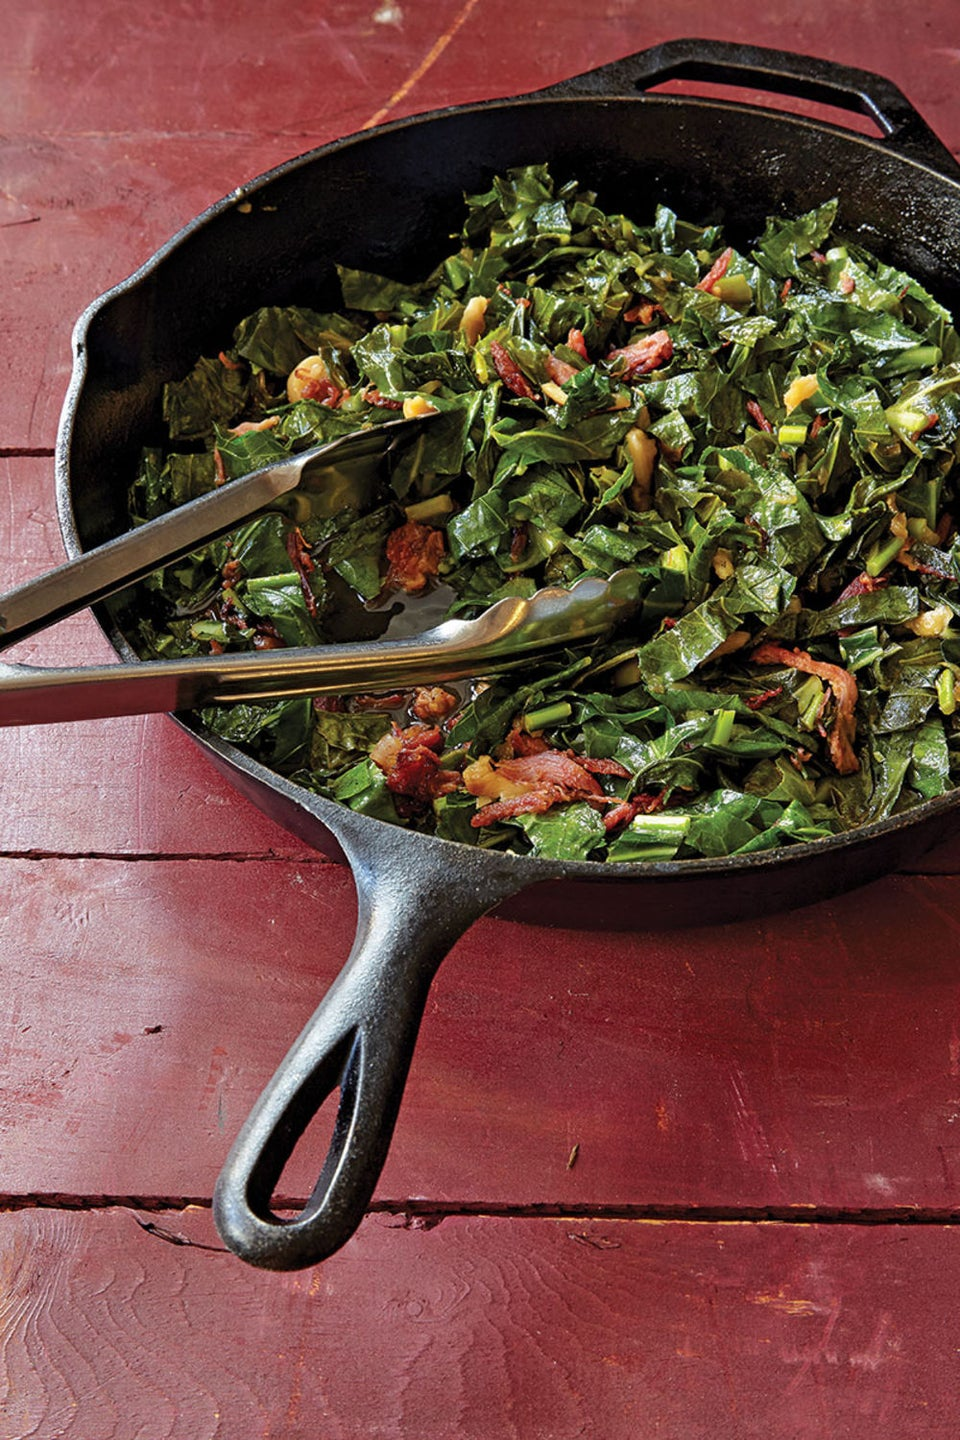 16 Mouth-Watering Collard Greens Recipes That Will Blow Your Mind